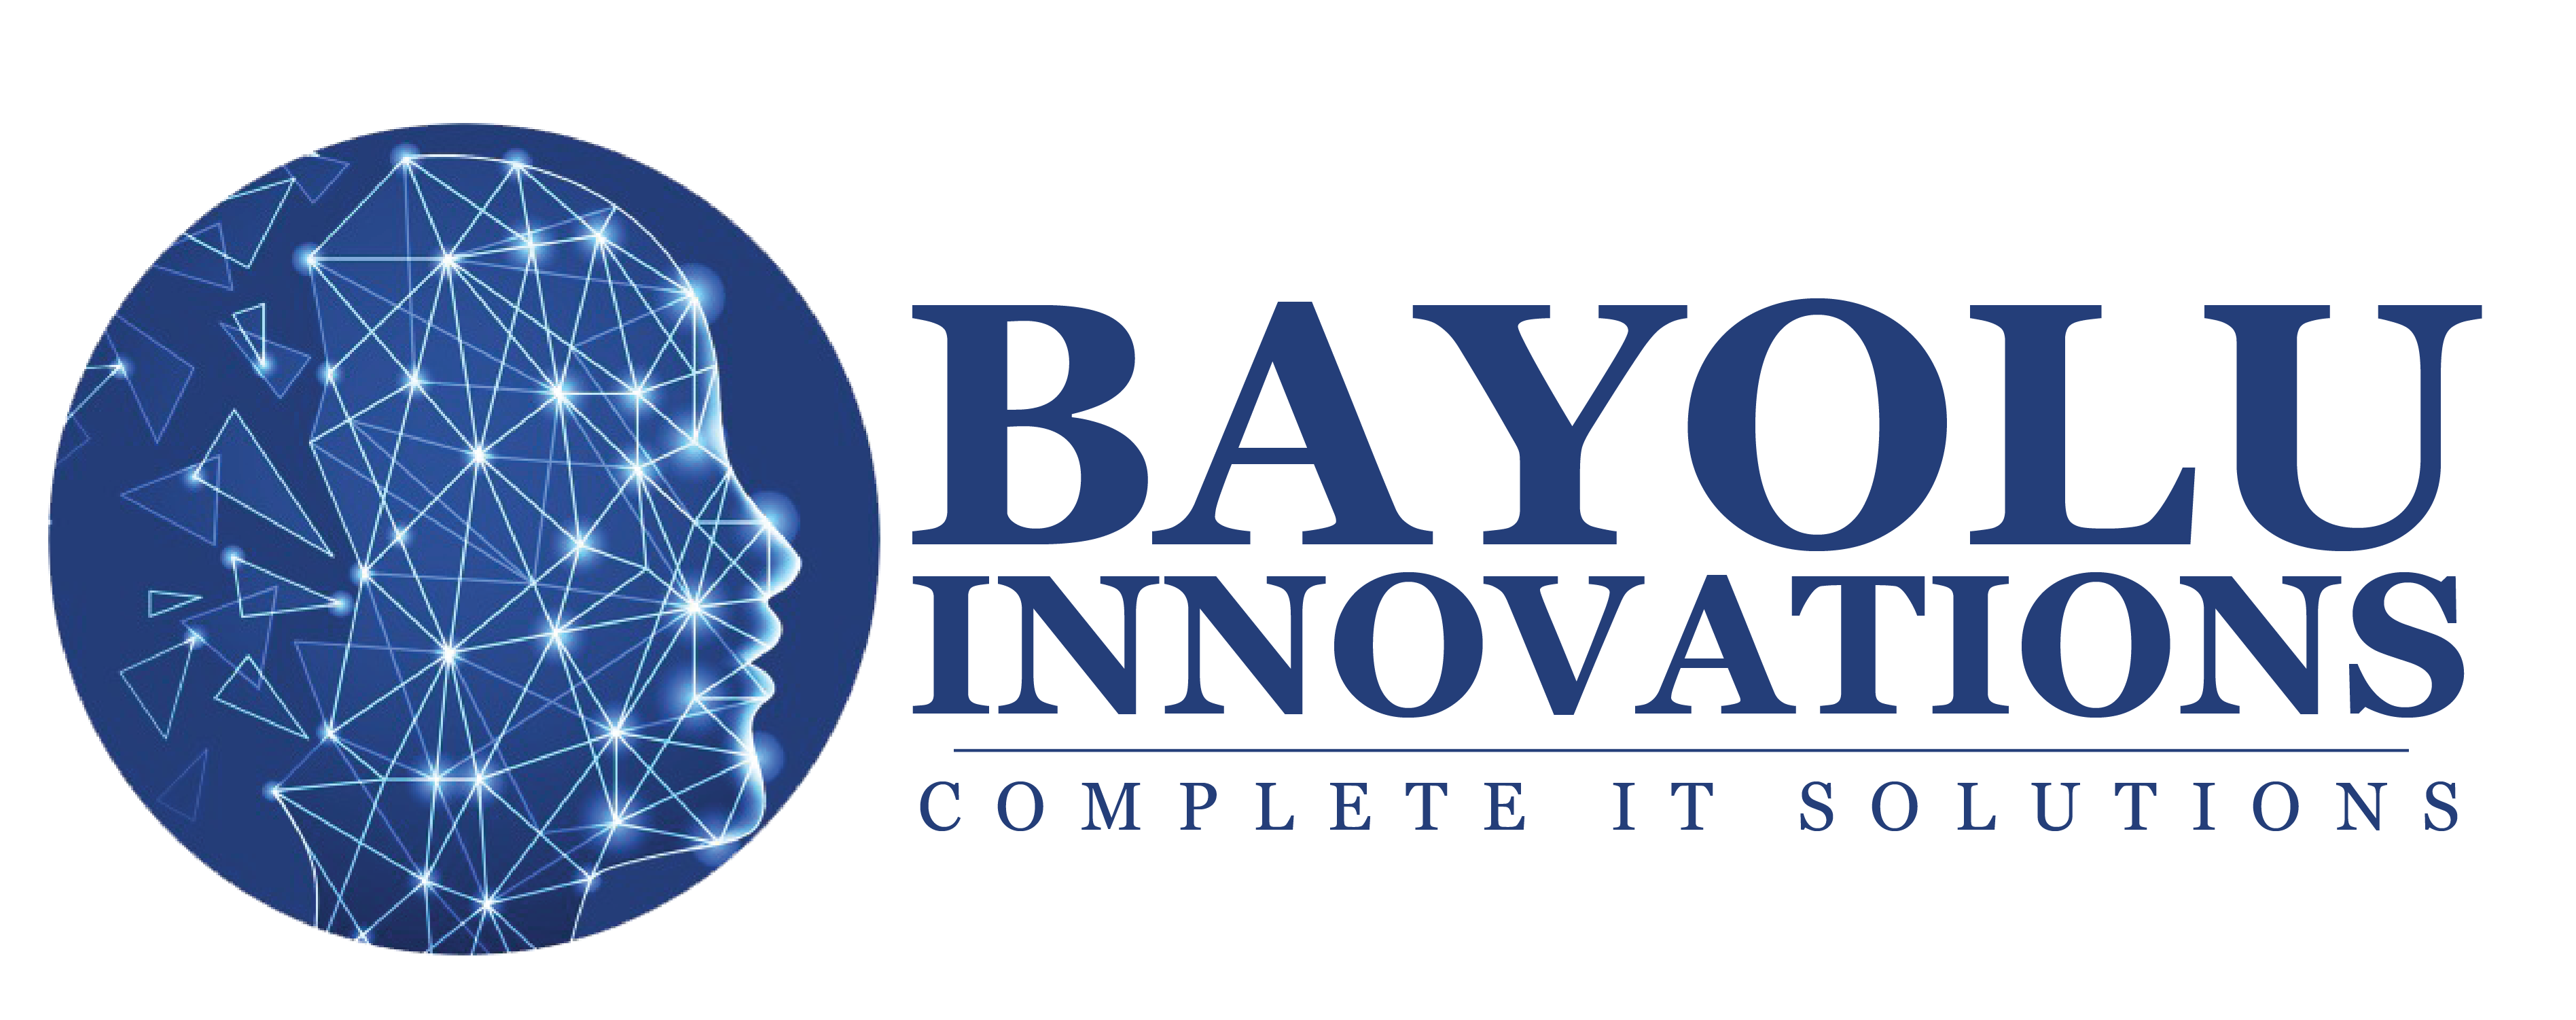 Bayolu innovations